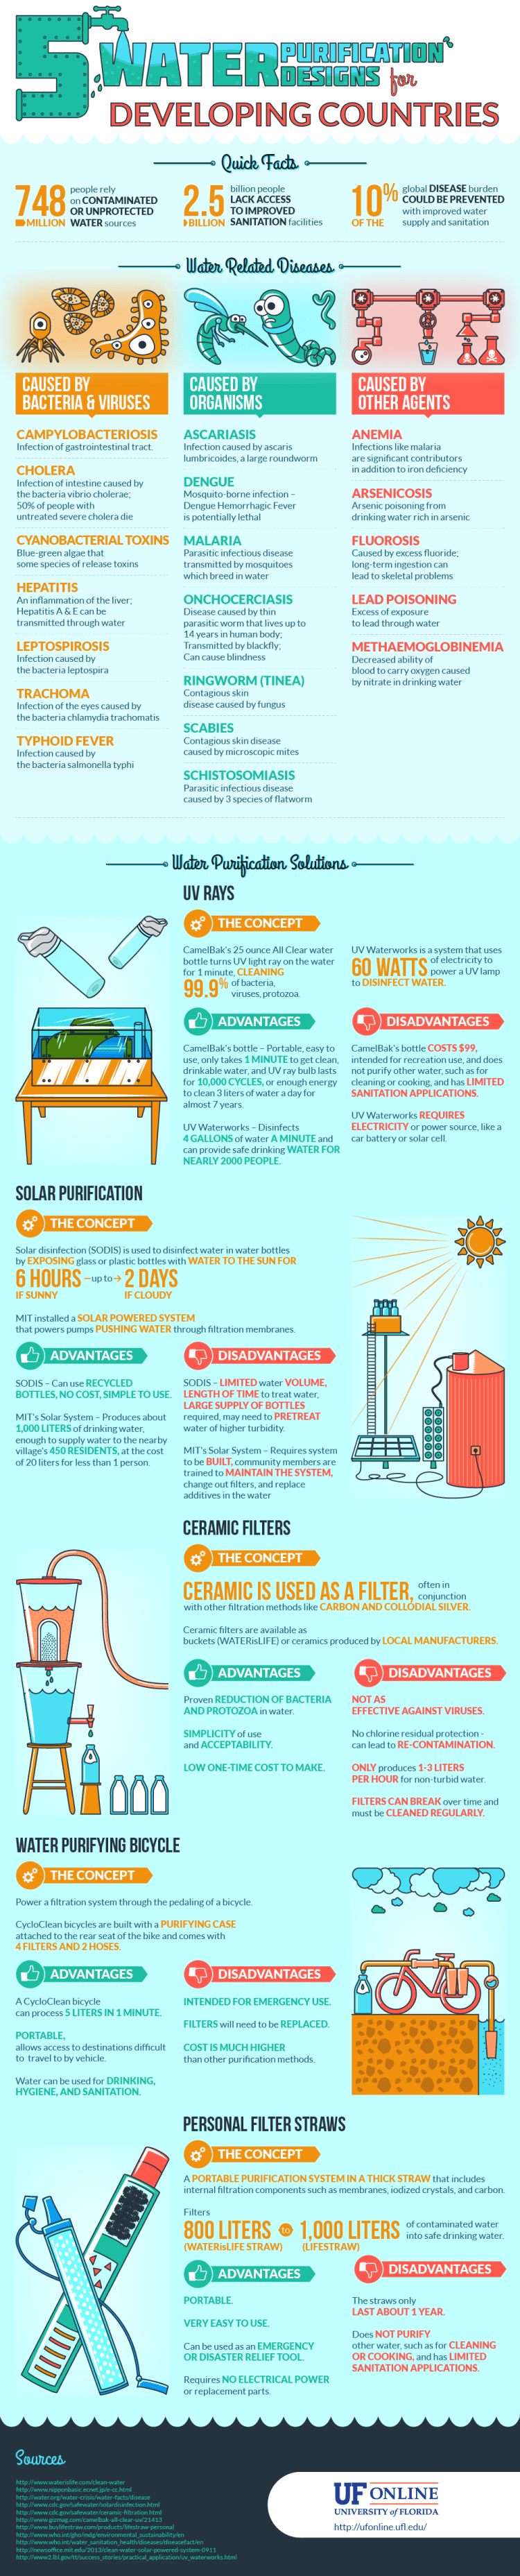 UF Online Infographic: Five Water Purification Designs for Third World Communities